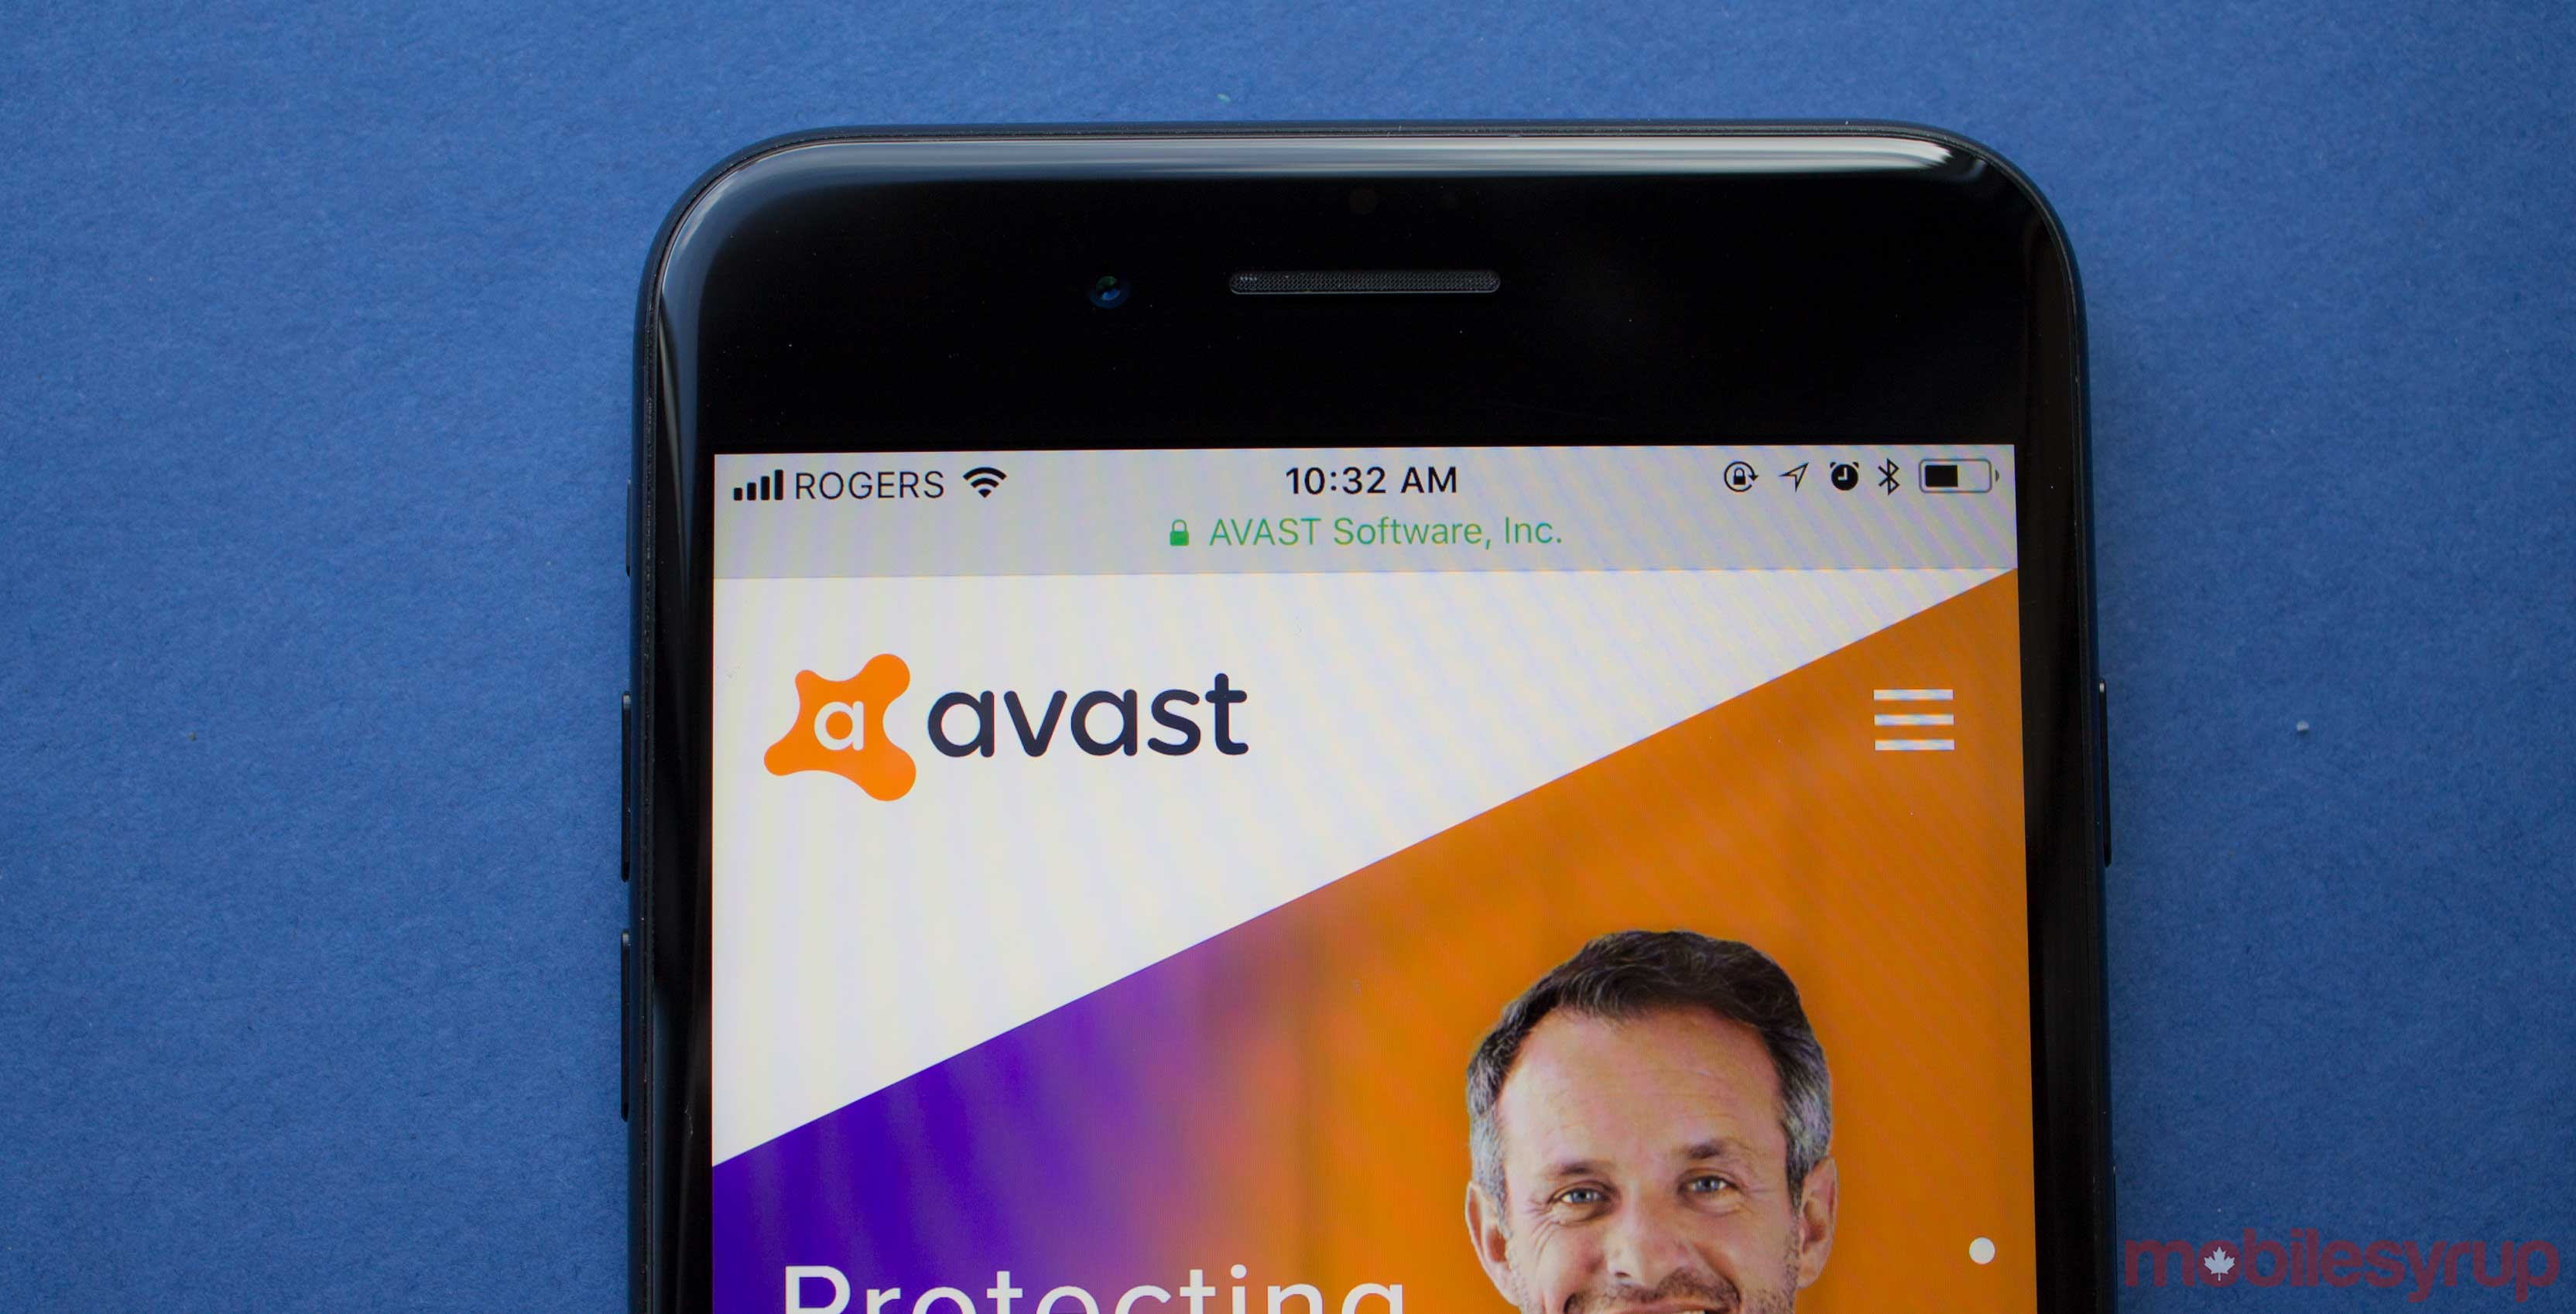 Avast on phone